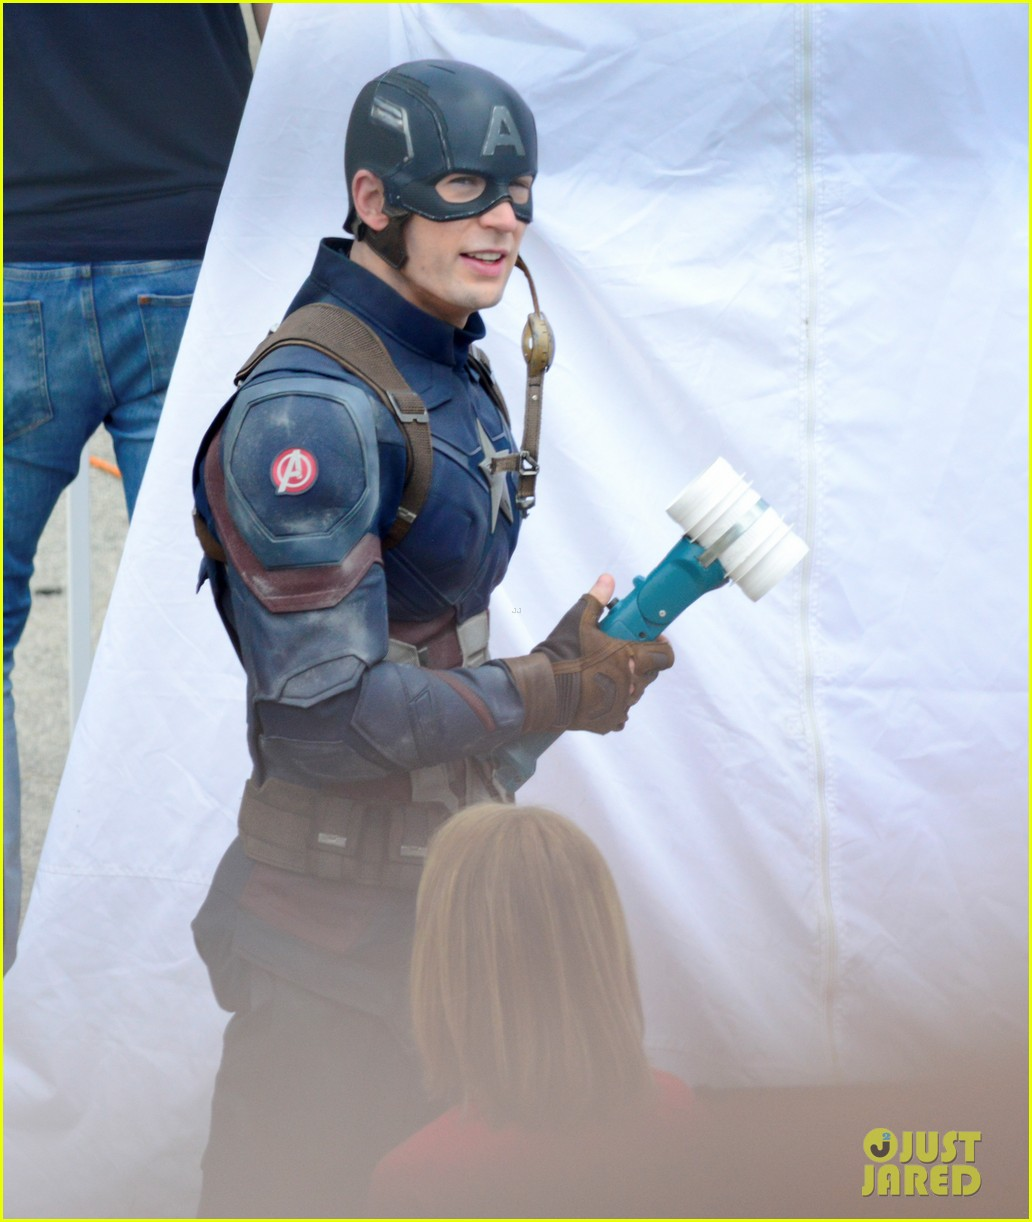 captain-americas-new-weapon-is-a-enter-our-poll-07.jpg